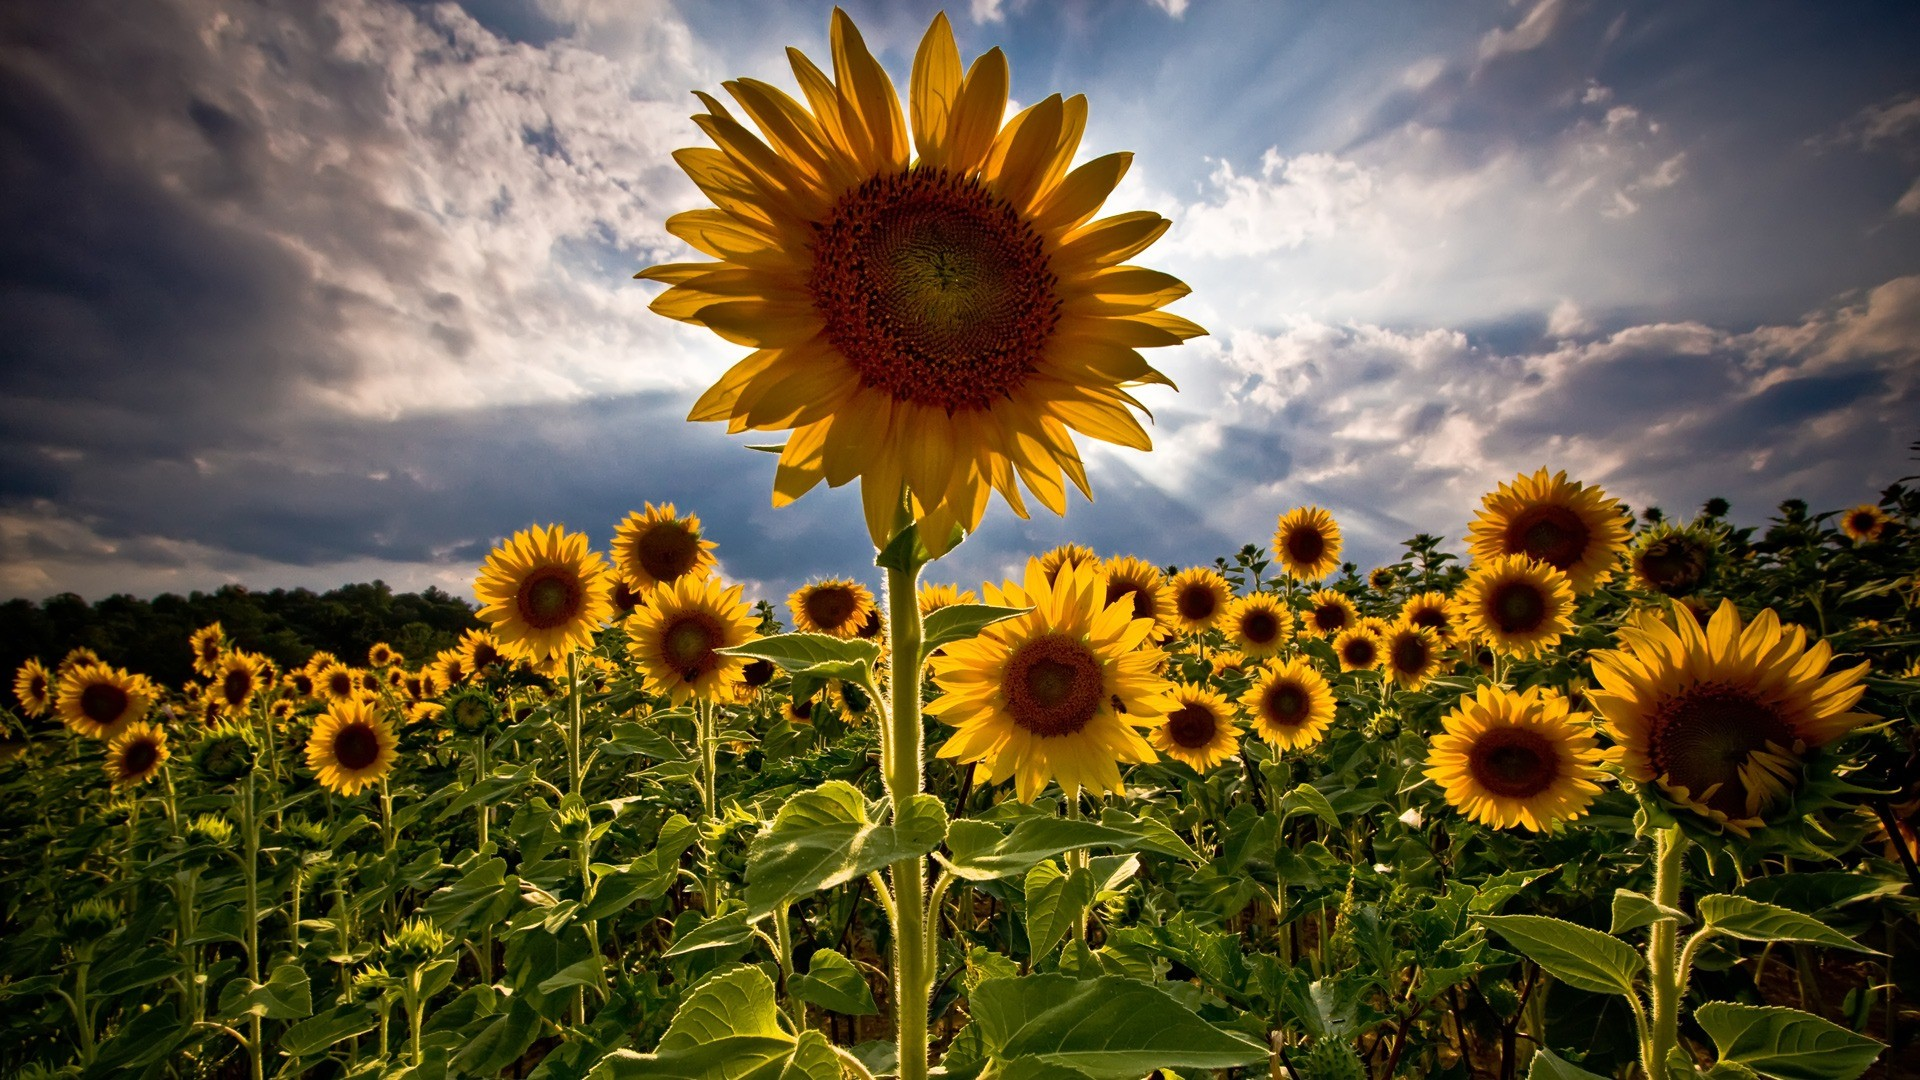 sunflowers-nature